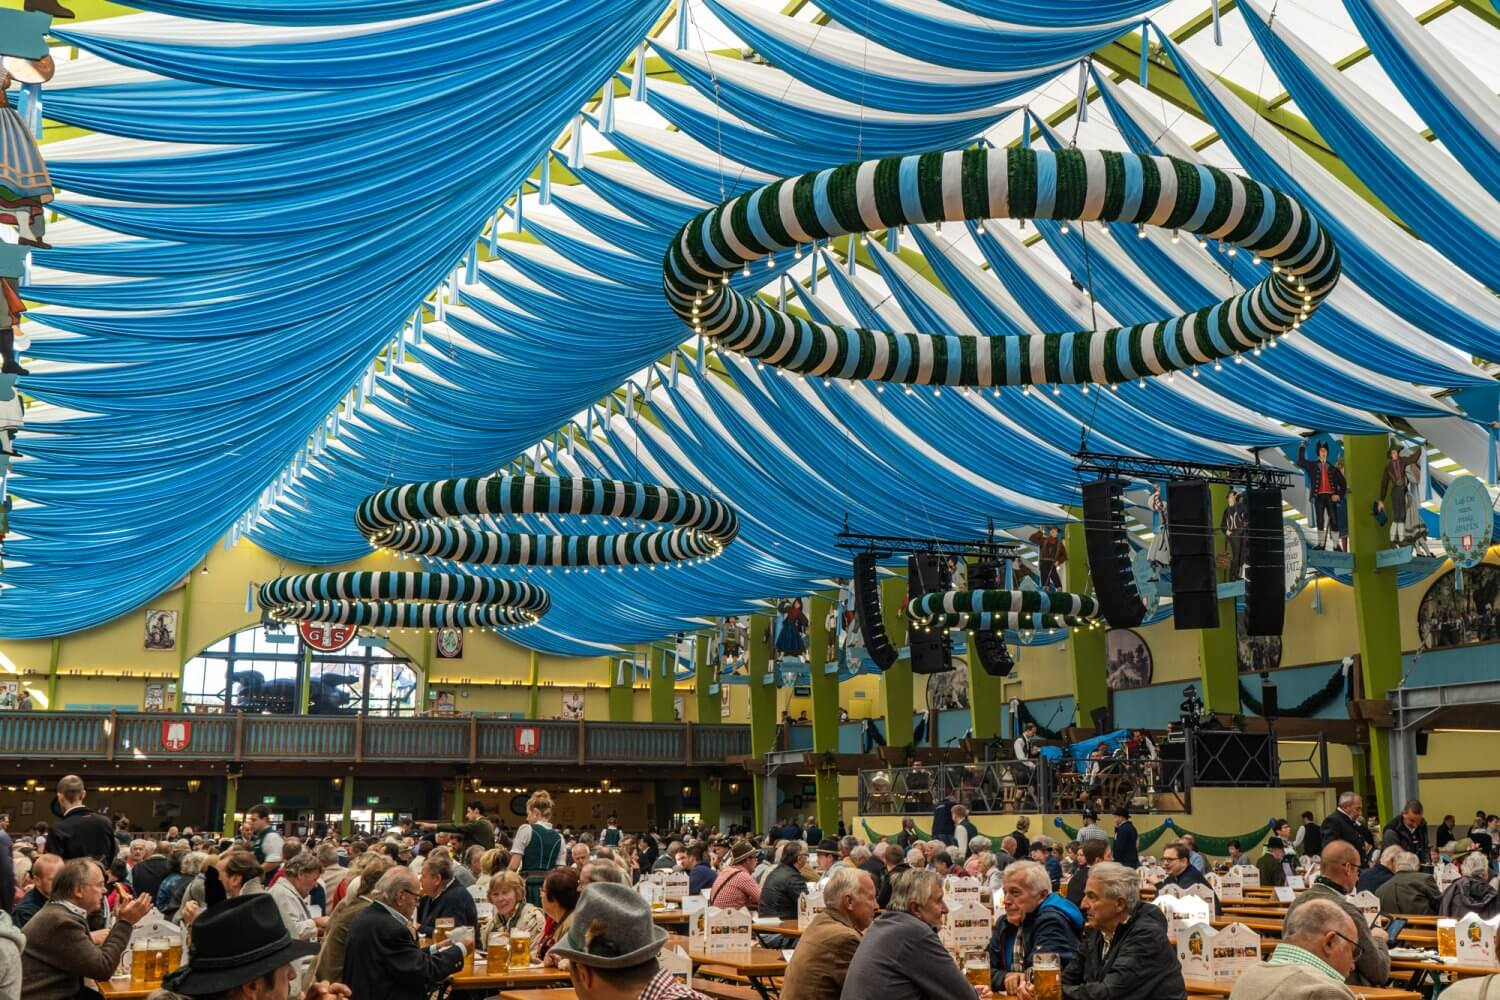 The Ochsenbraterei at Oktoberfest in Munich, Germany